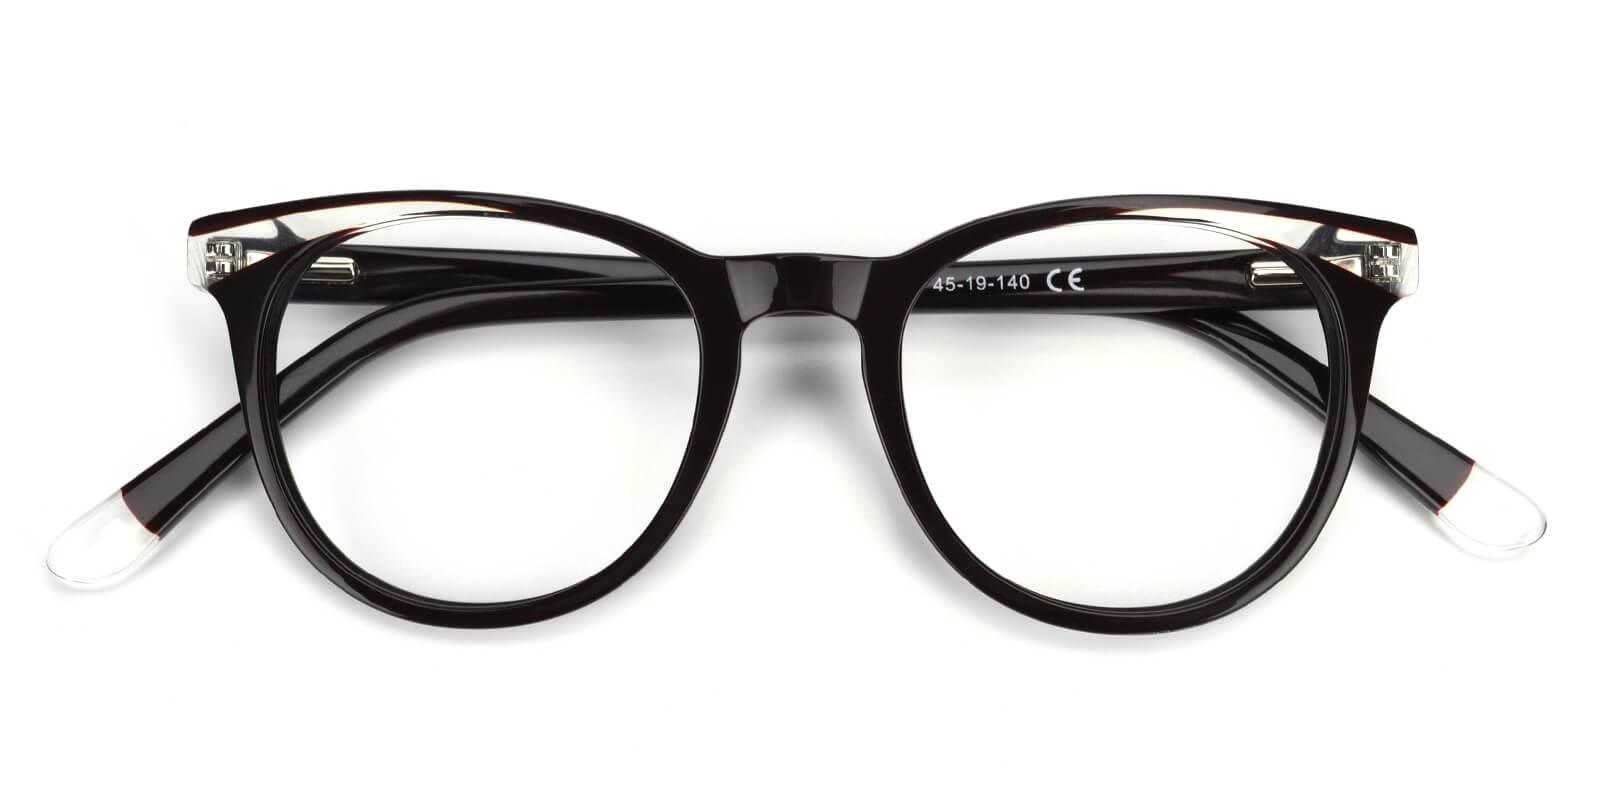 Clementine-Black-Oval / Cat-Acetate-Eyeglasses-detail